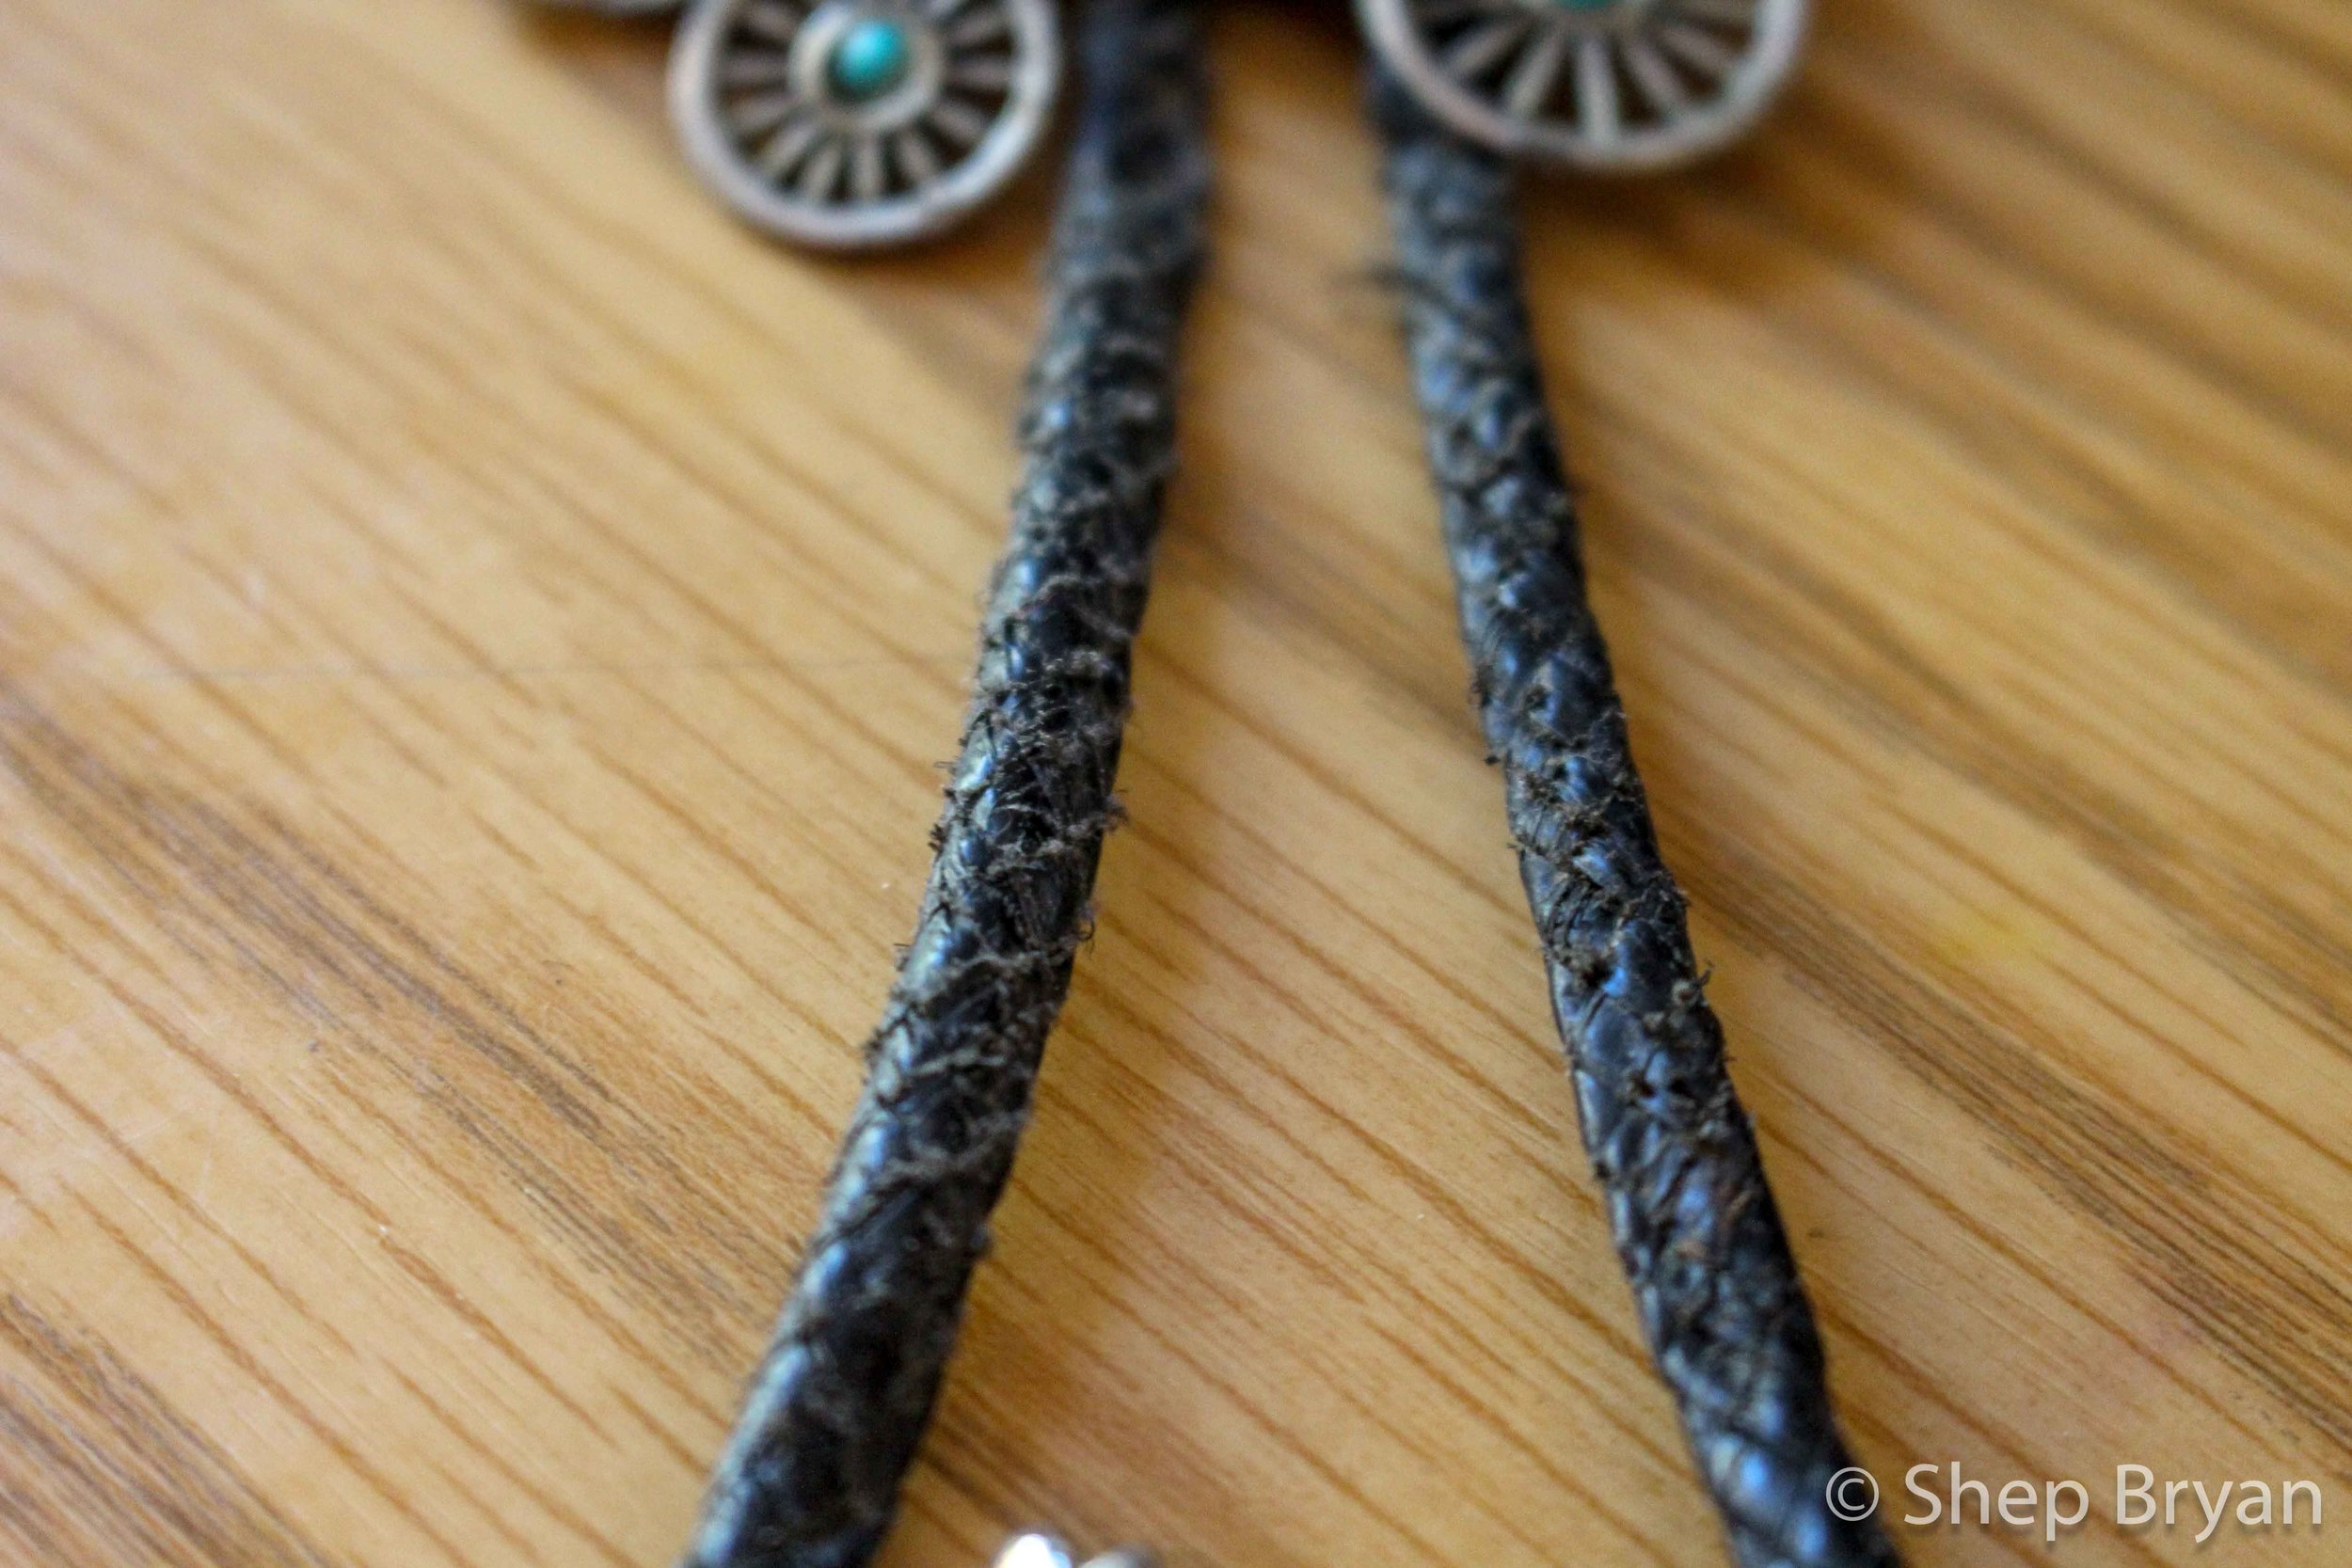 Up close & personal with a vinyl bolo cord that has seen better days.